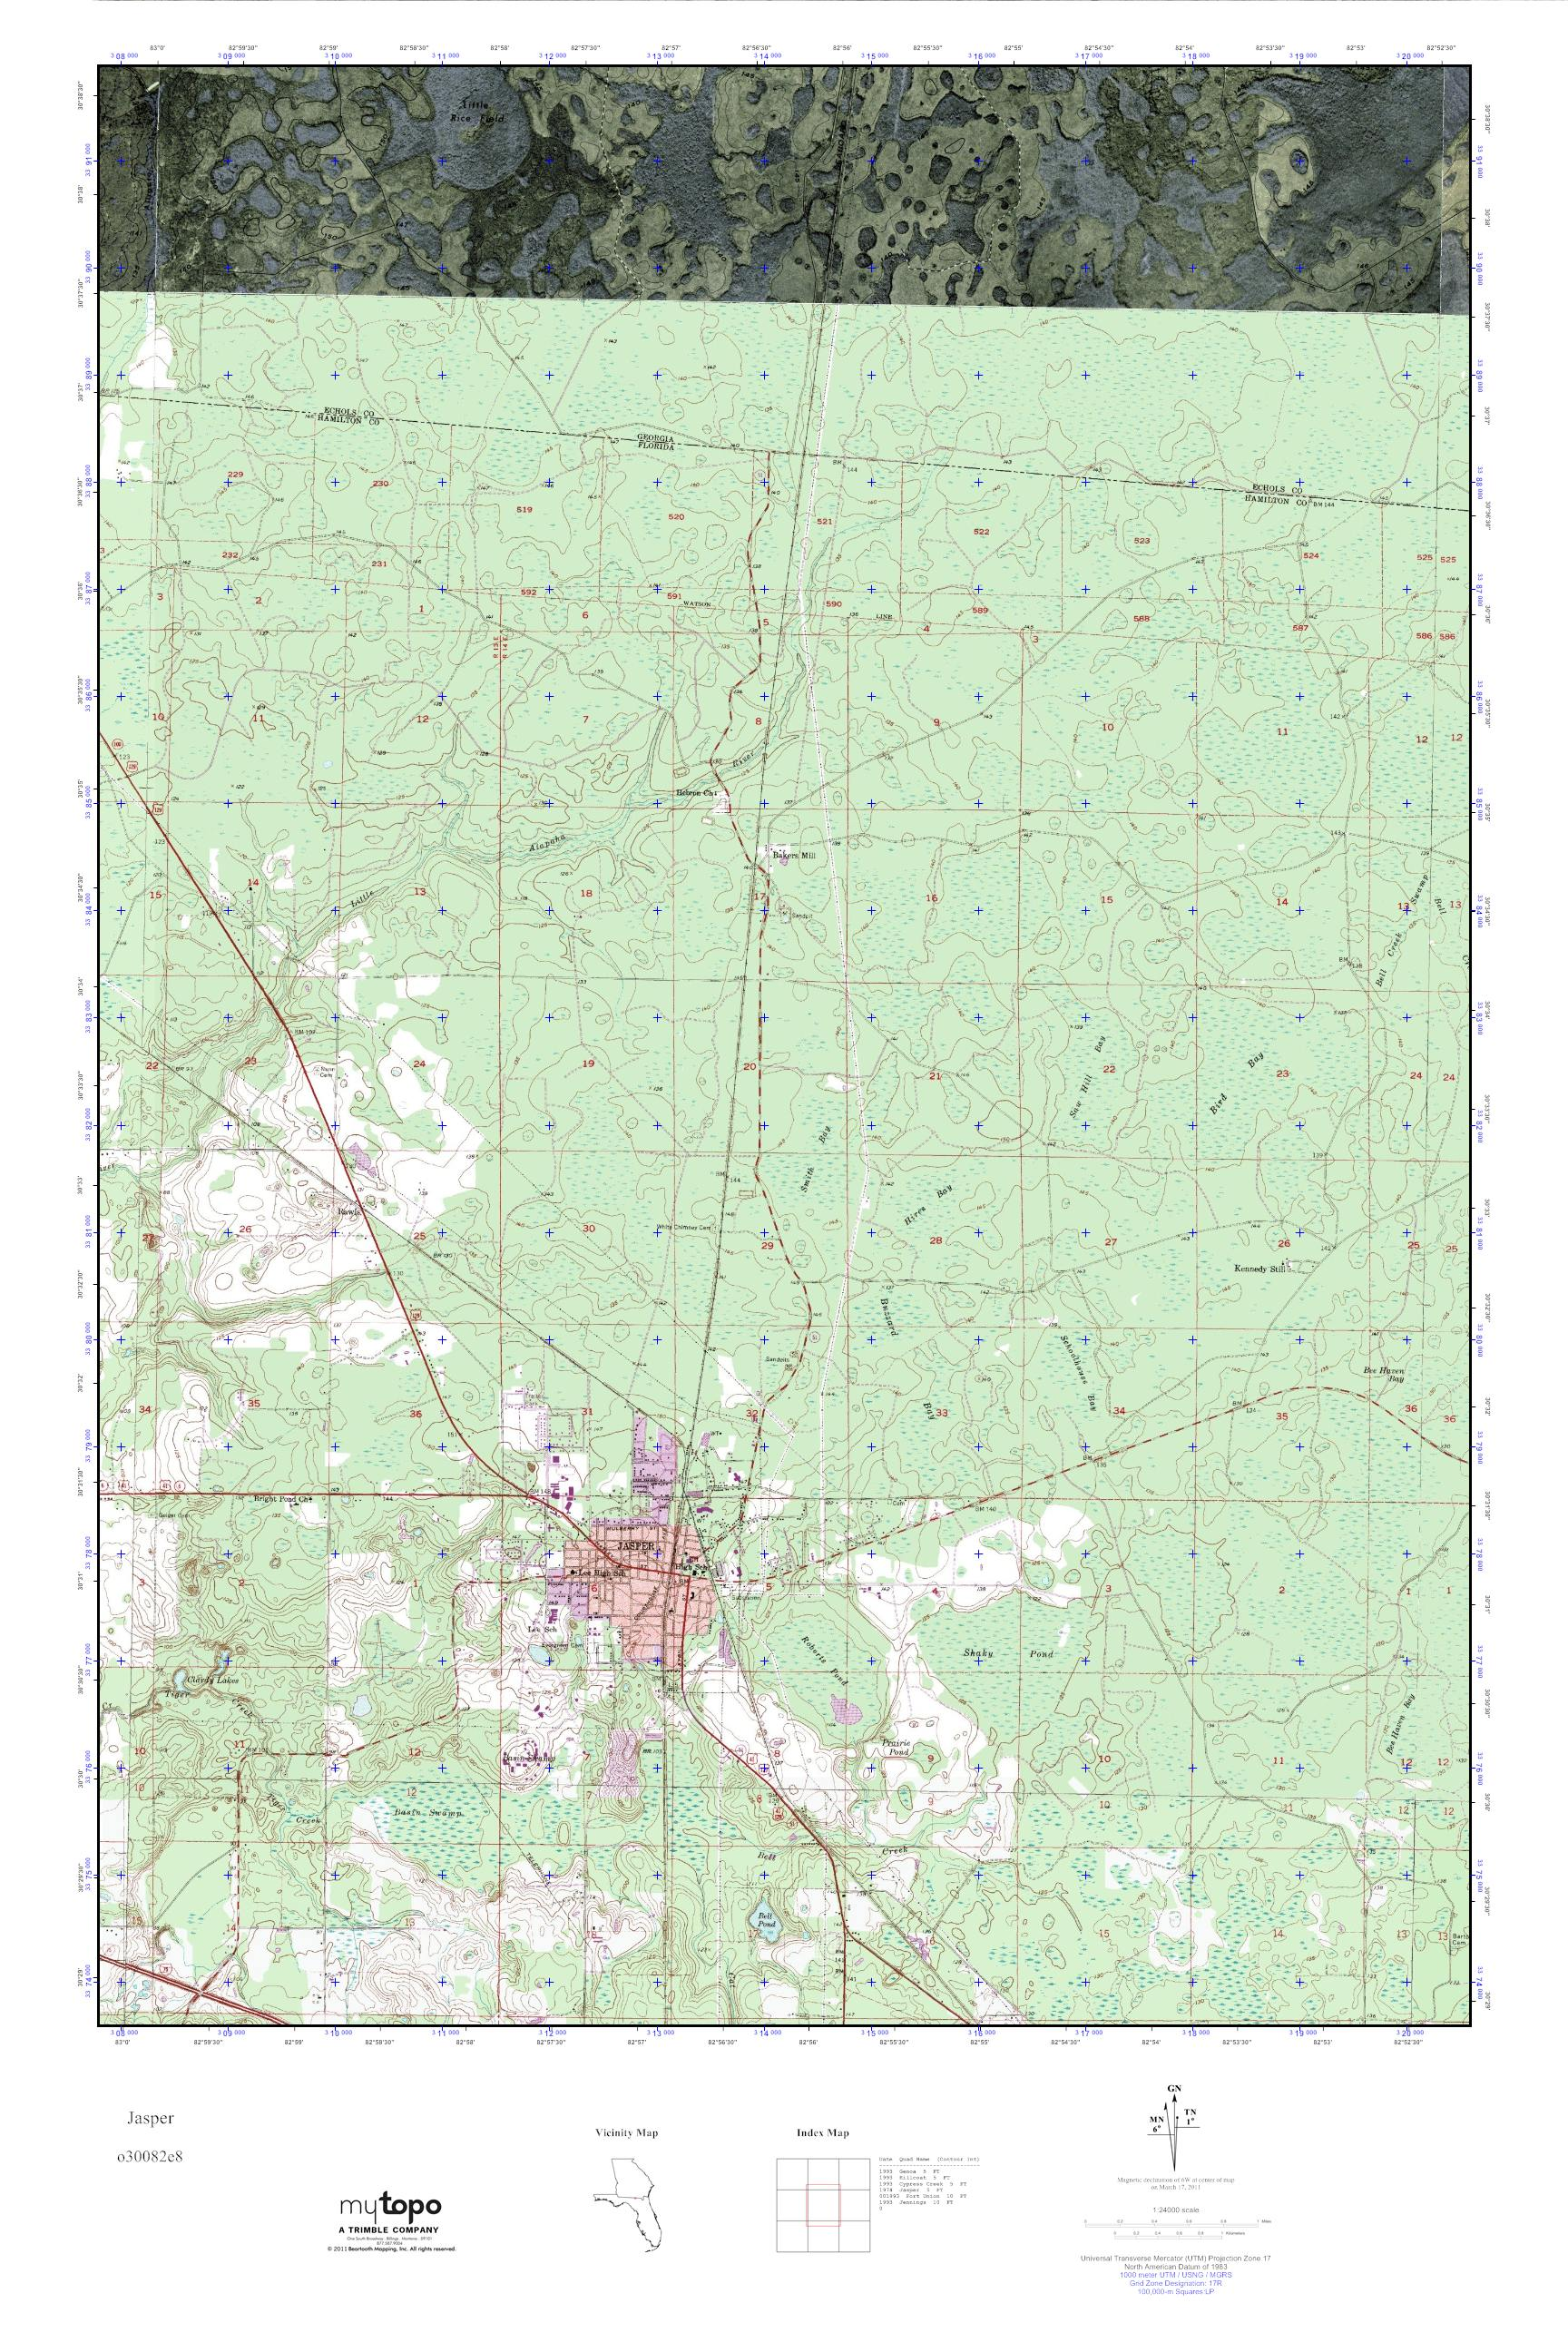 Jasper Georgia Map.Mytopo Jasper Georgia Usgs Quad Topo Map